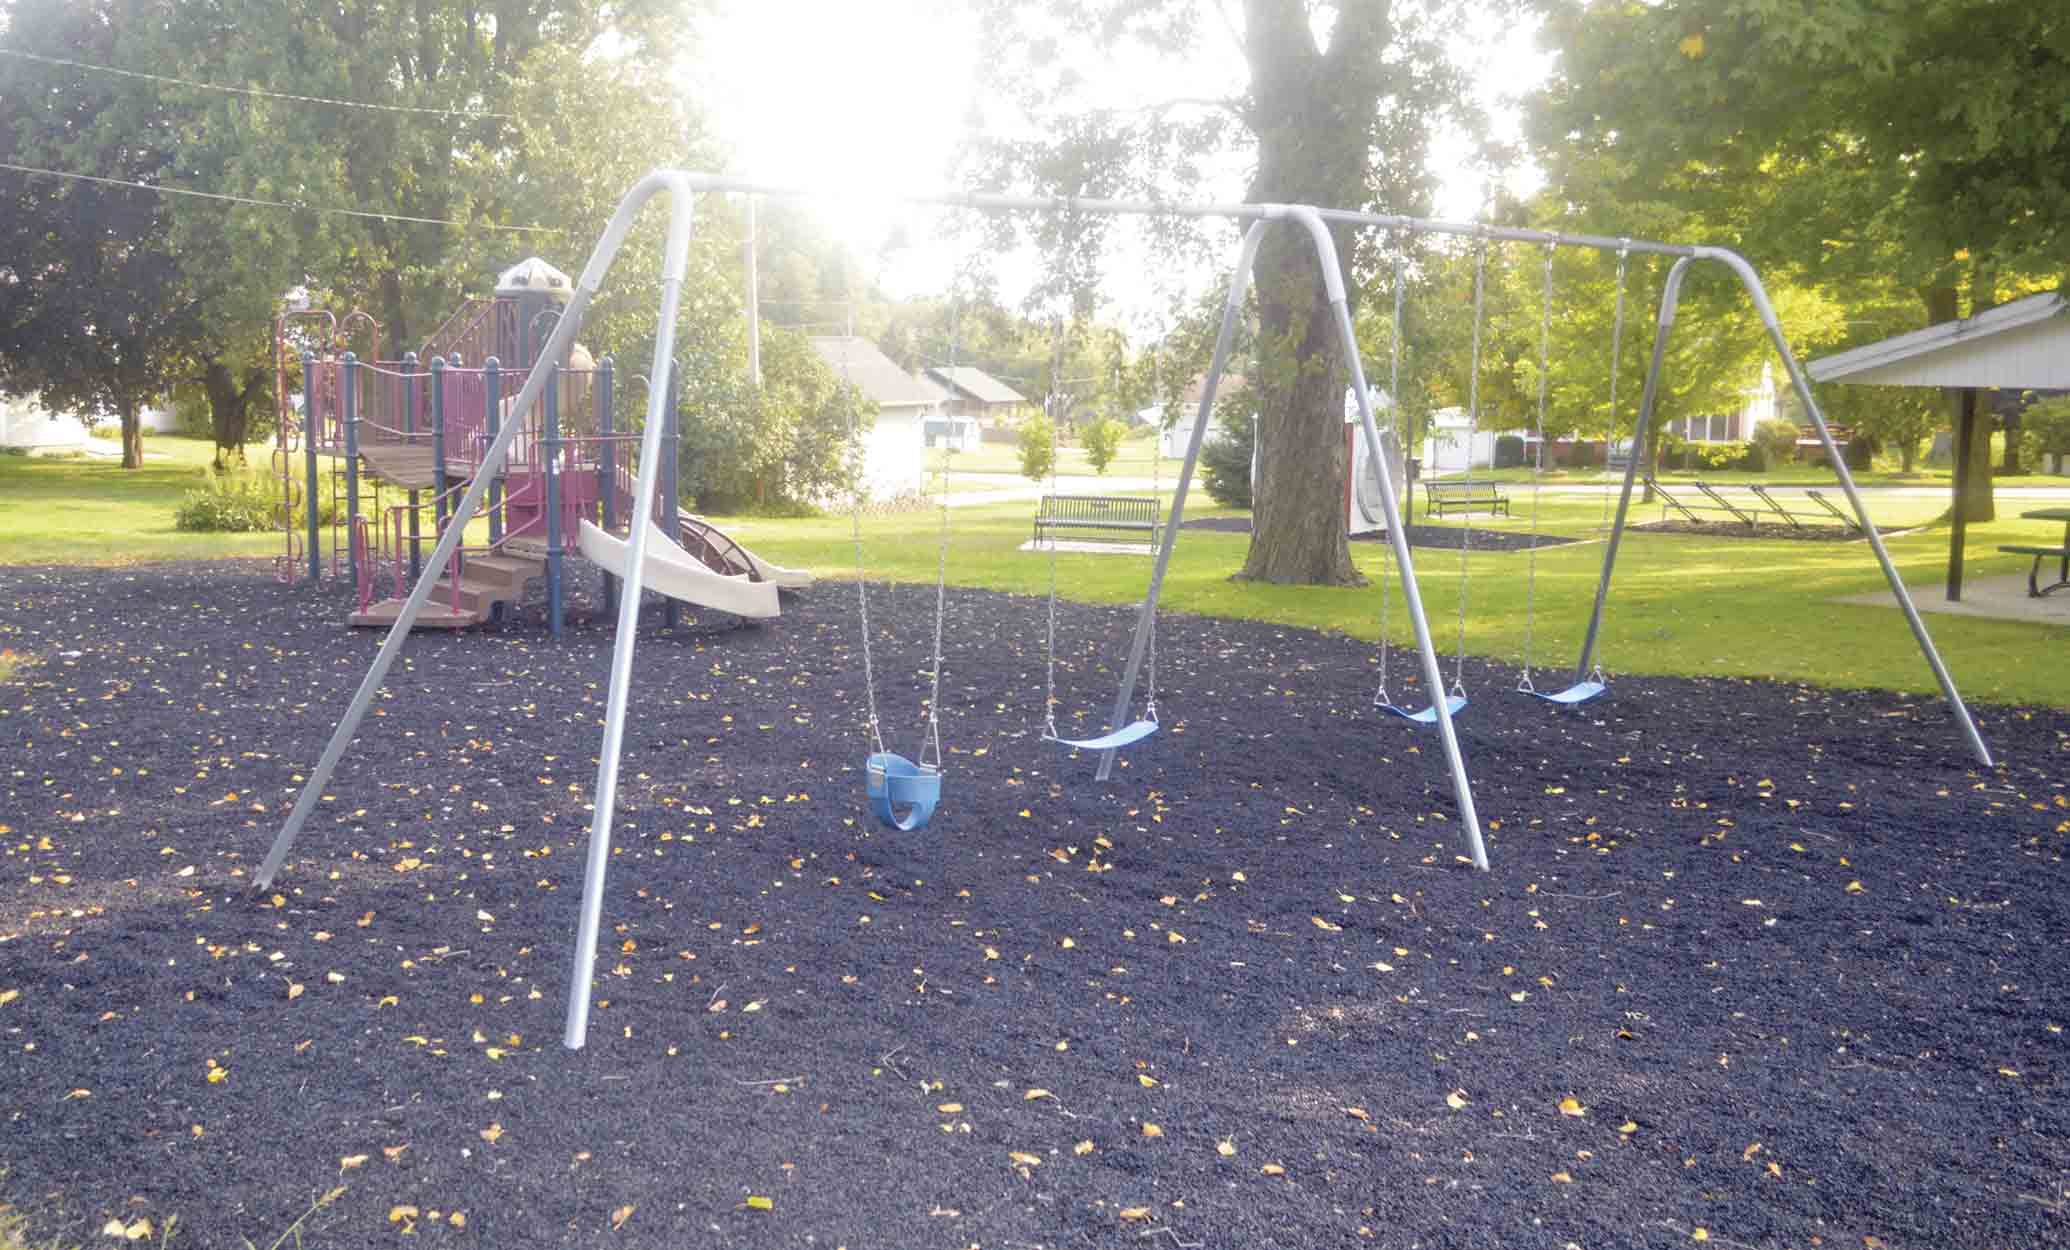 Earlier this summer, the Ossian City Park received an overhaul as the mulch that previously surrounded the playground equipment was replaced with safer and more budget friendly rubber pellets. City of Ossian maintenance employees Don DiLaura and Brian Zweibohmer worked with a Reilly Construction...